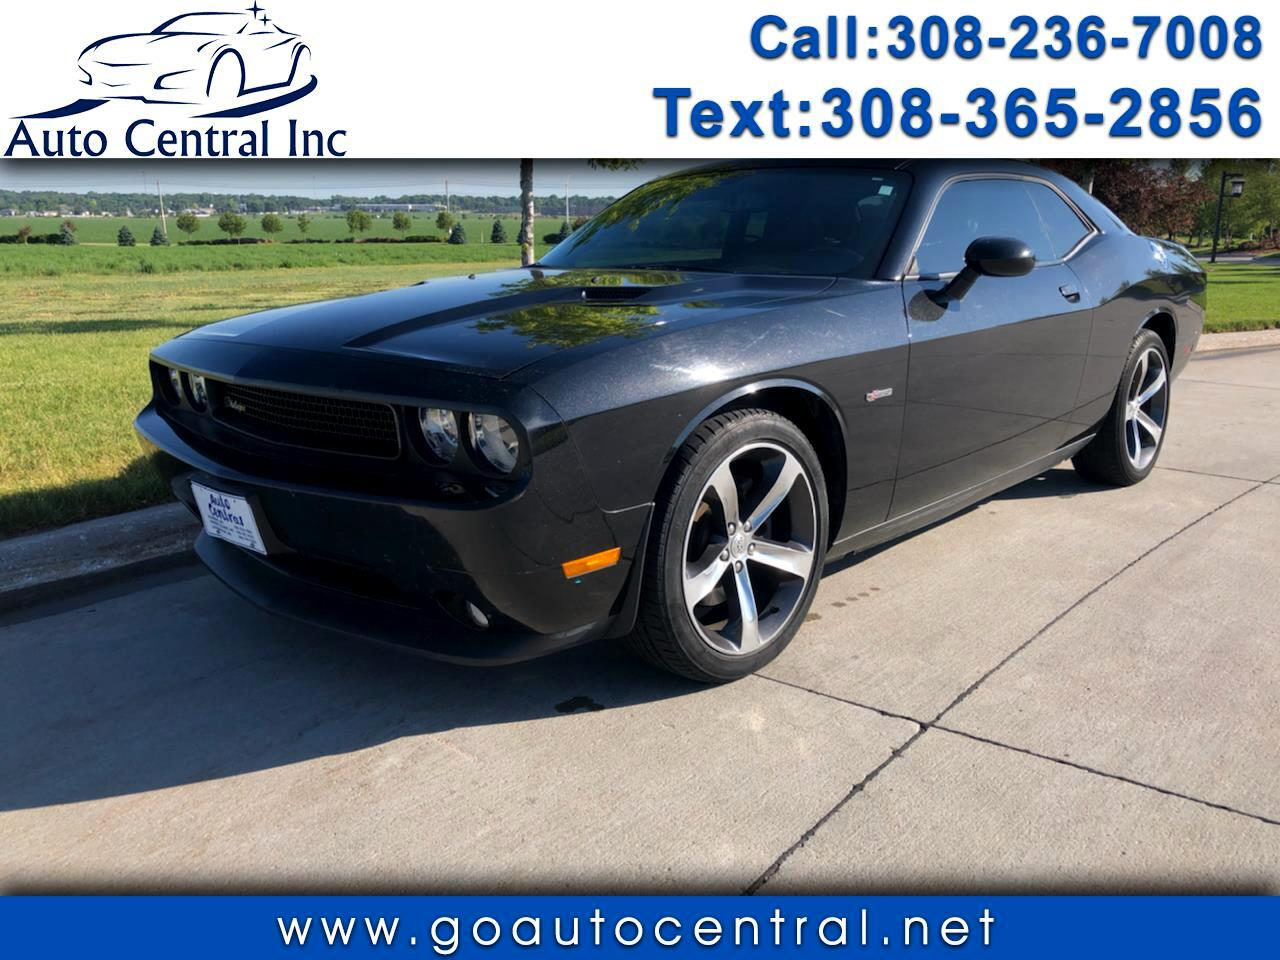 Used 2014 Dodge Challenger 2dr Cpe Sxt 100th Anniversary Appearance Group For Sale In Kearney Ne 68847 Auto Central